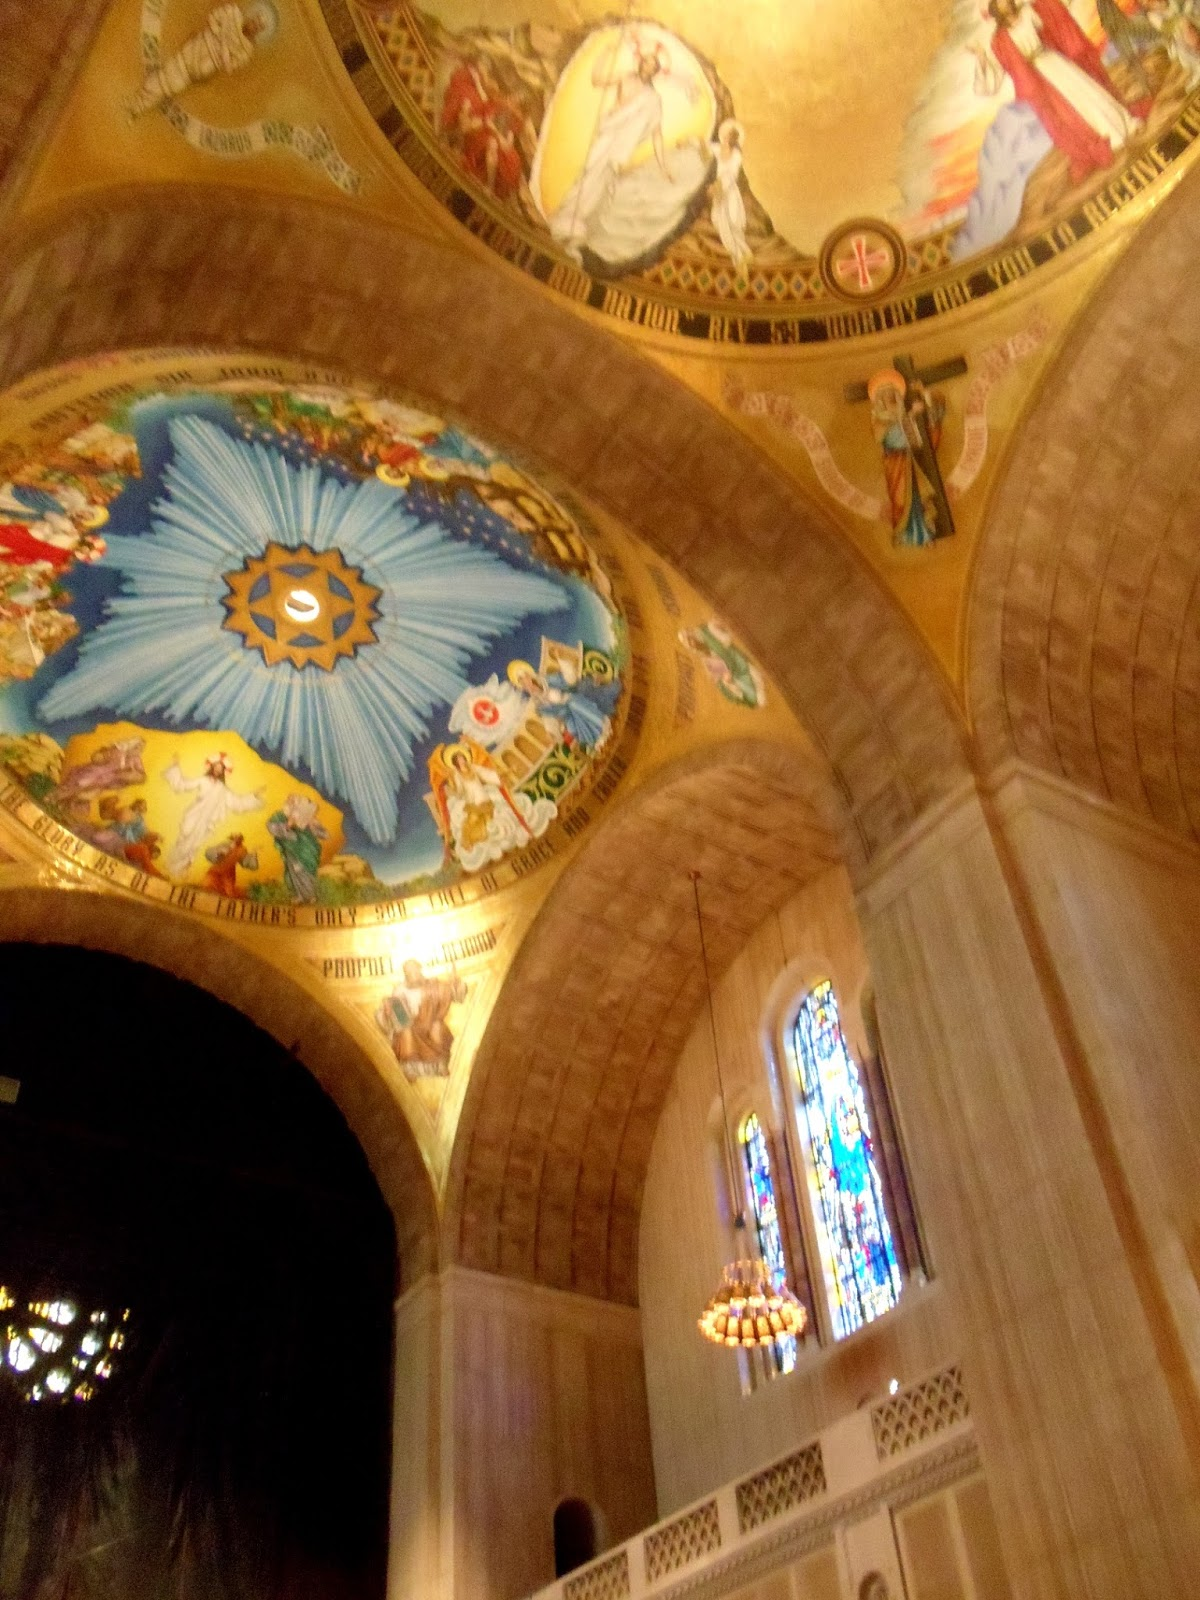 Looking up at the ceiling at the Basilica of the National Shrine of theImmaculate Conception